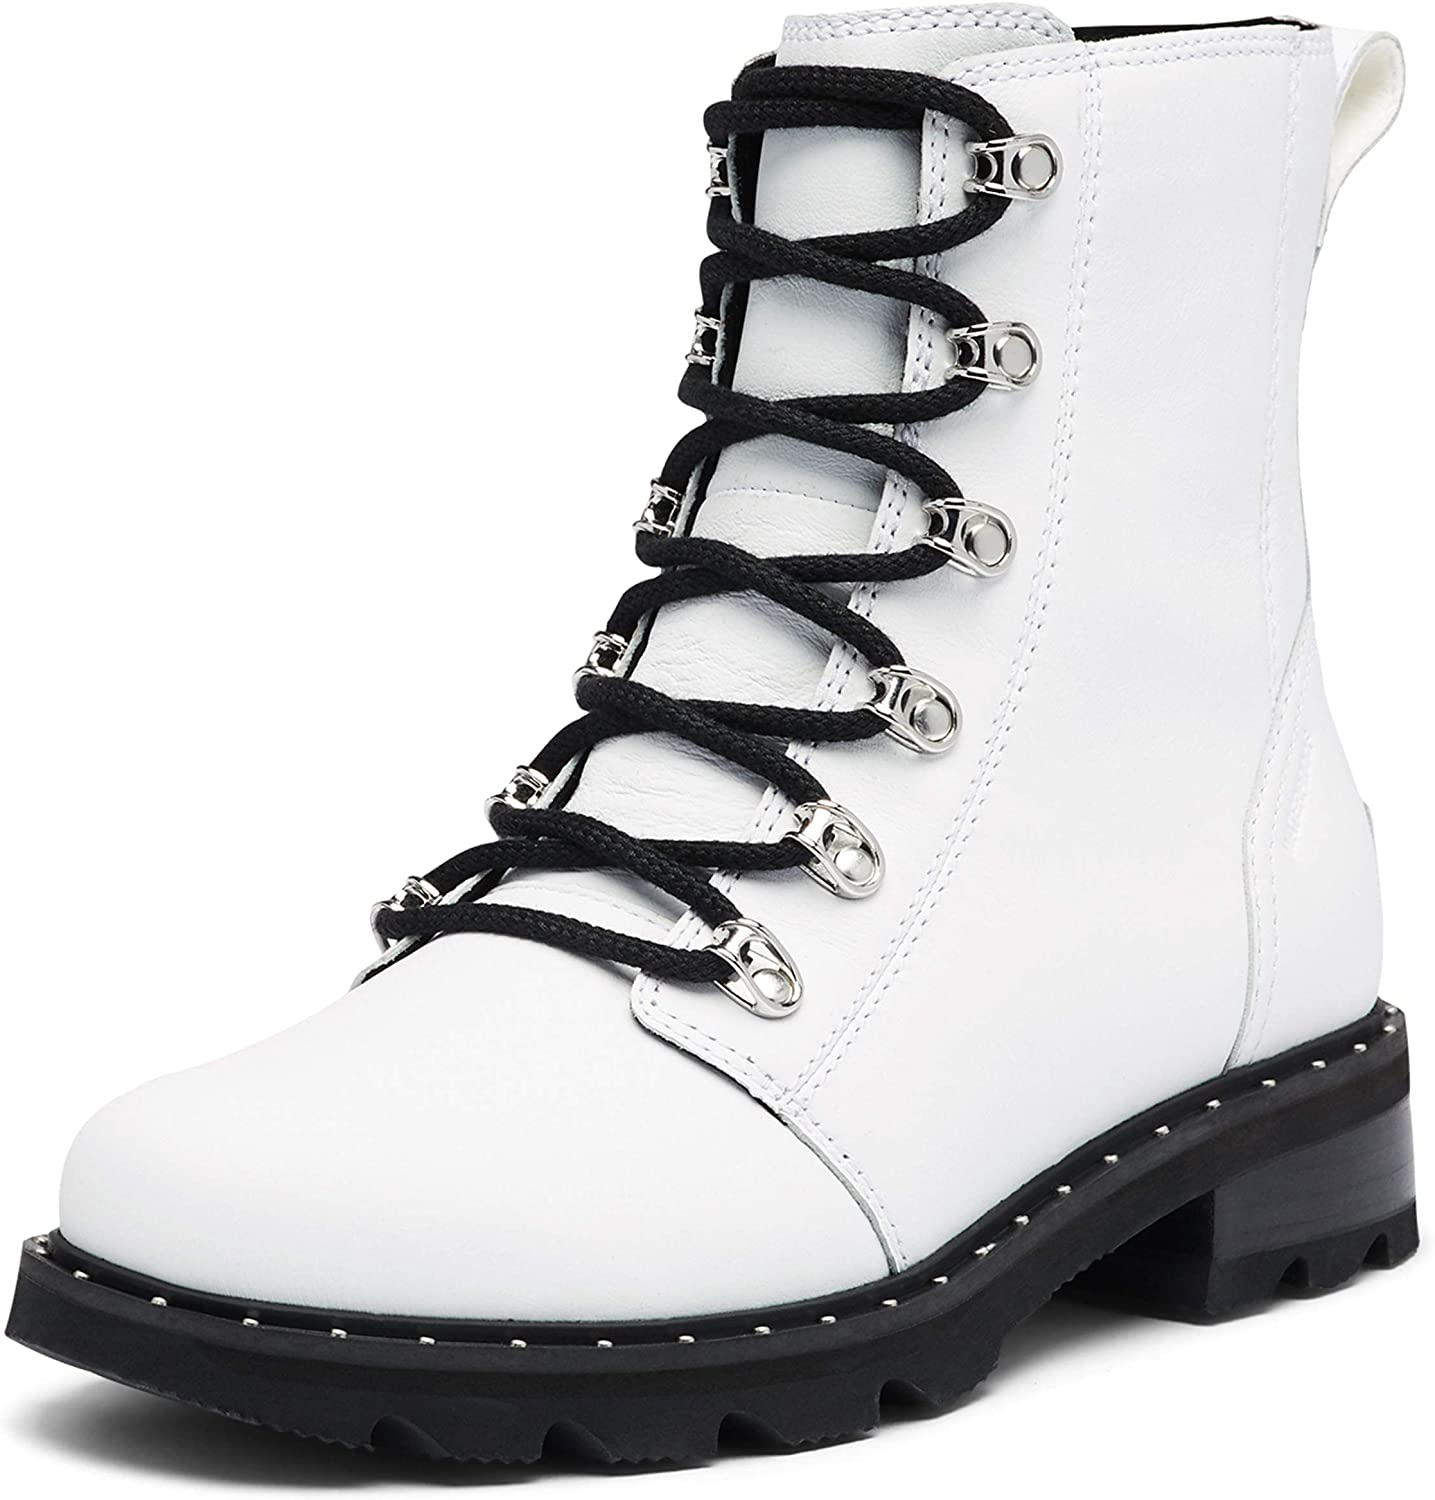 Sorel womens Lace-up Boots